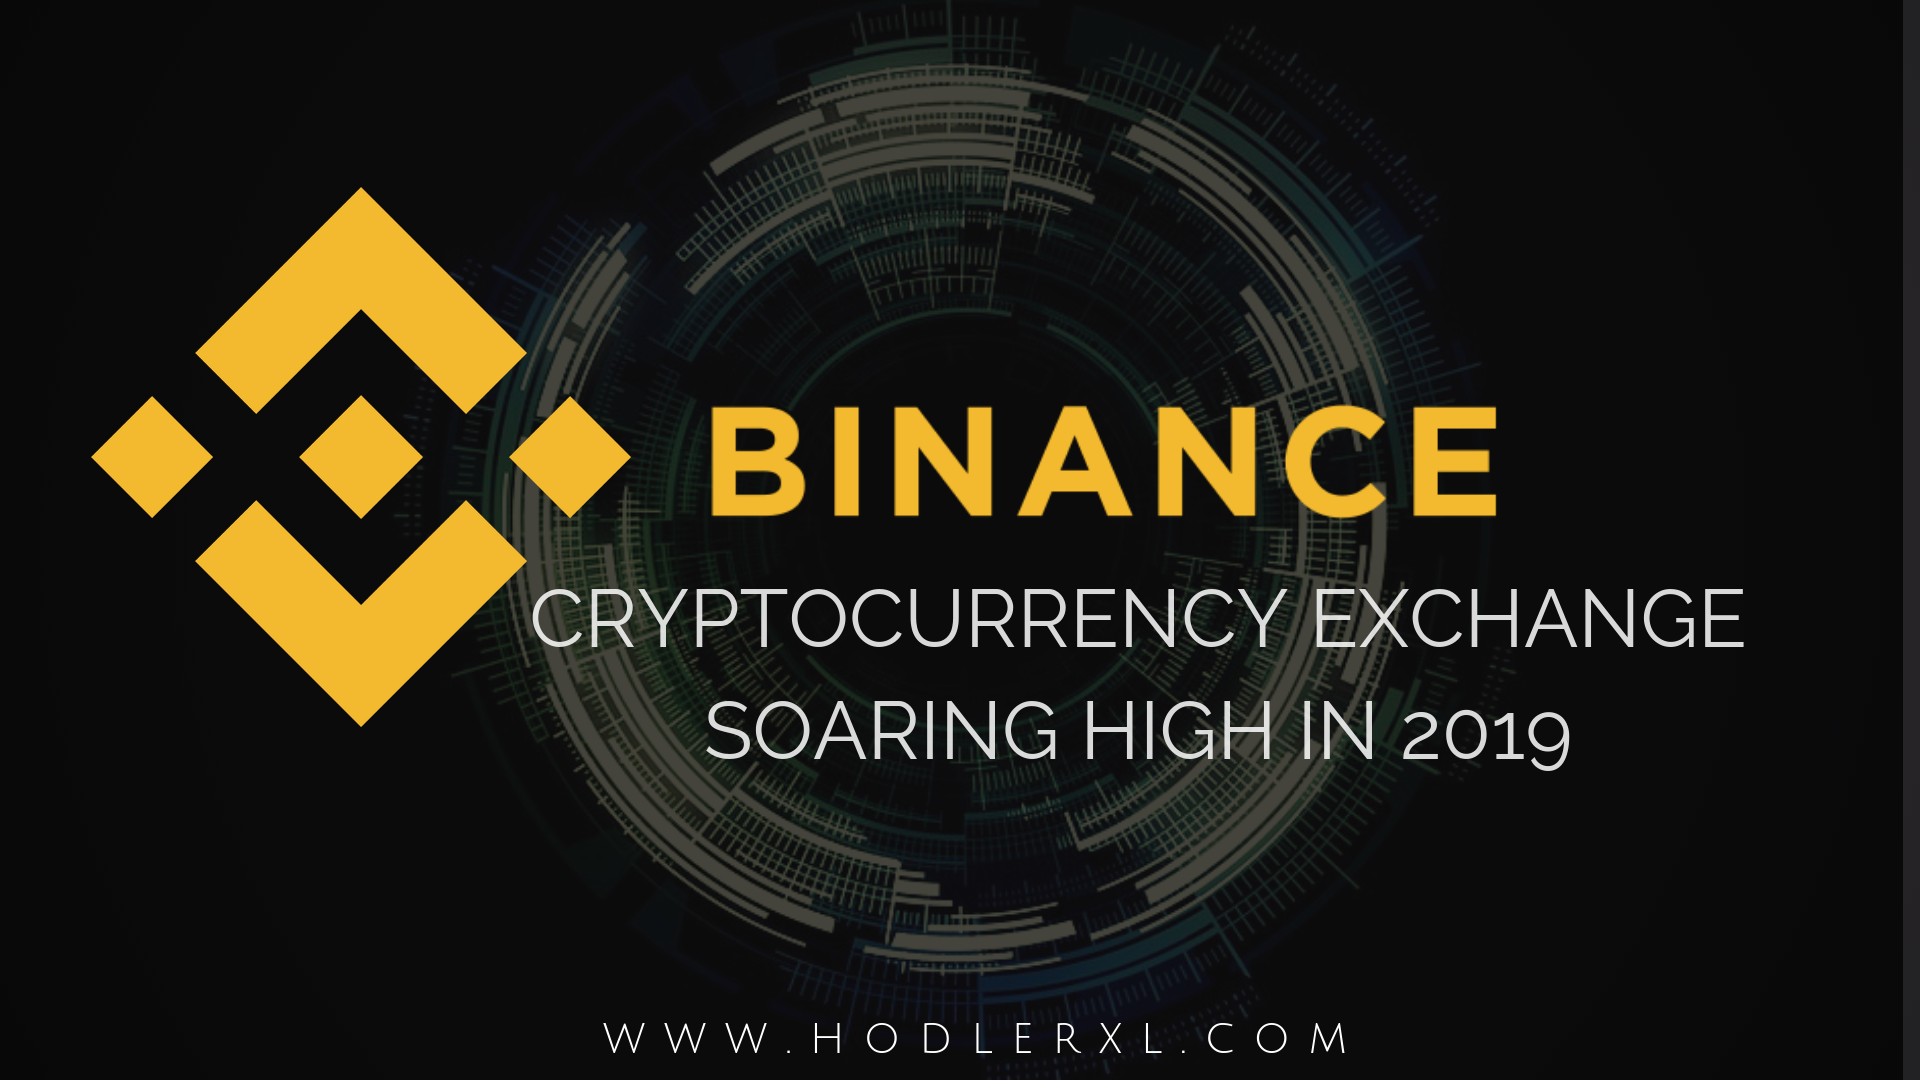 Binance Cryptocurrency Exchange Soaring High In 2019